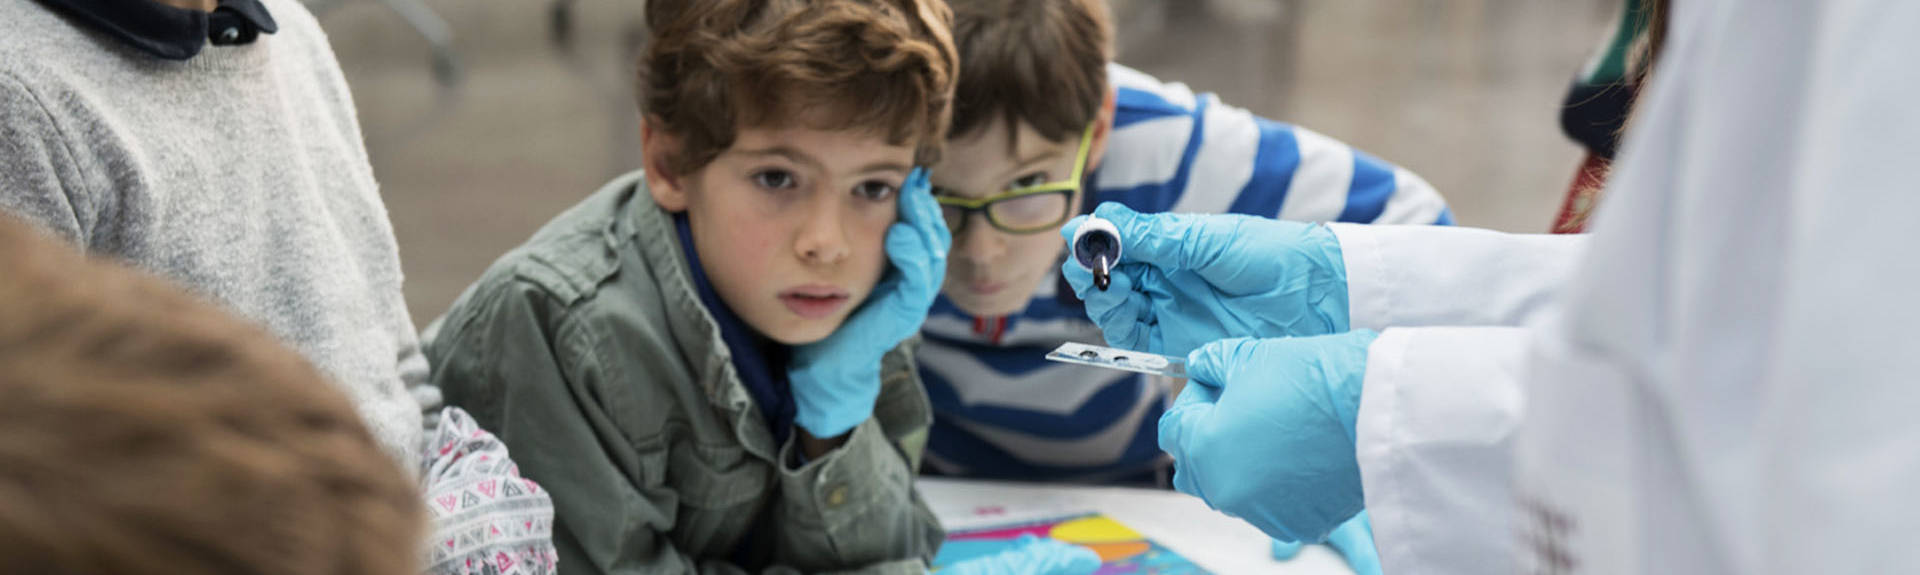 header-enfant-fete-science-concentres